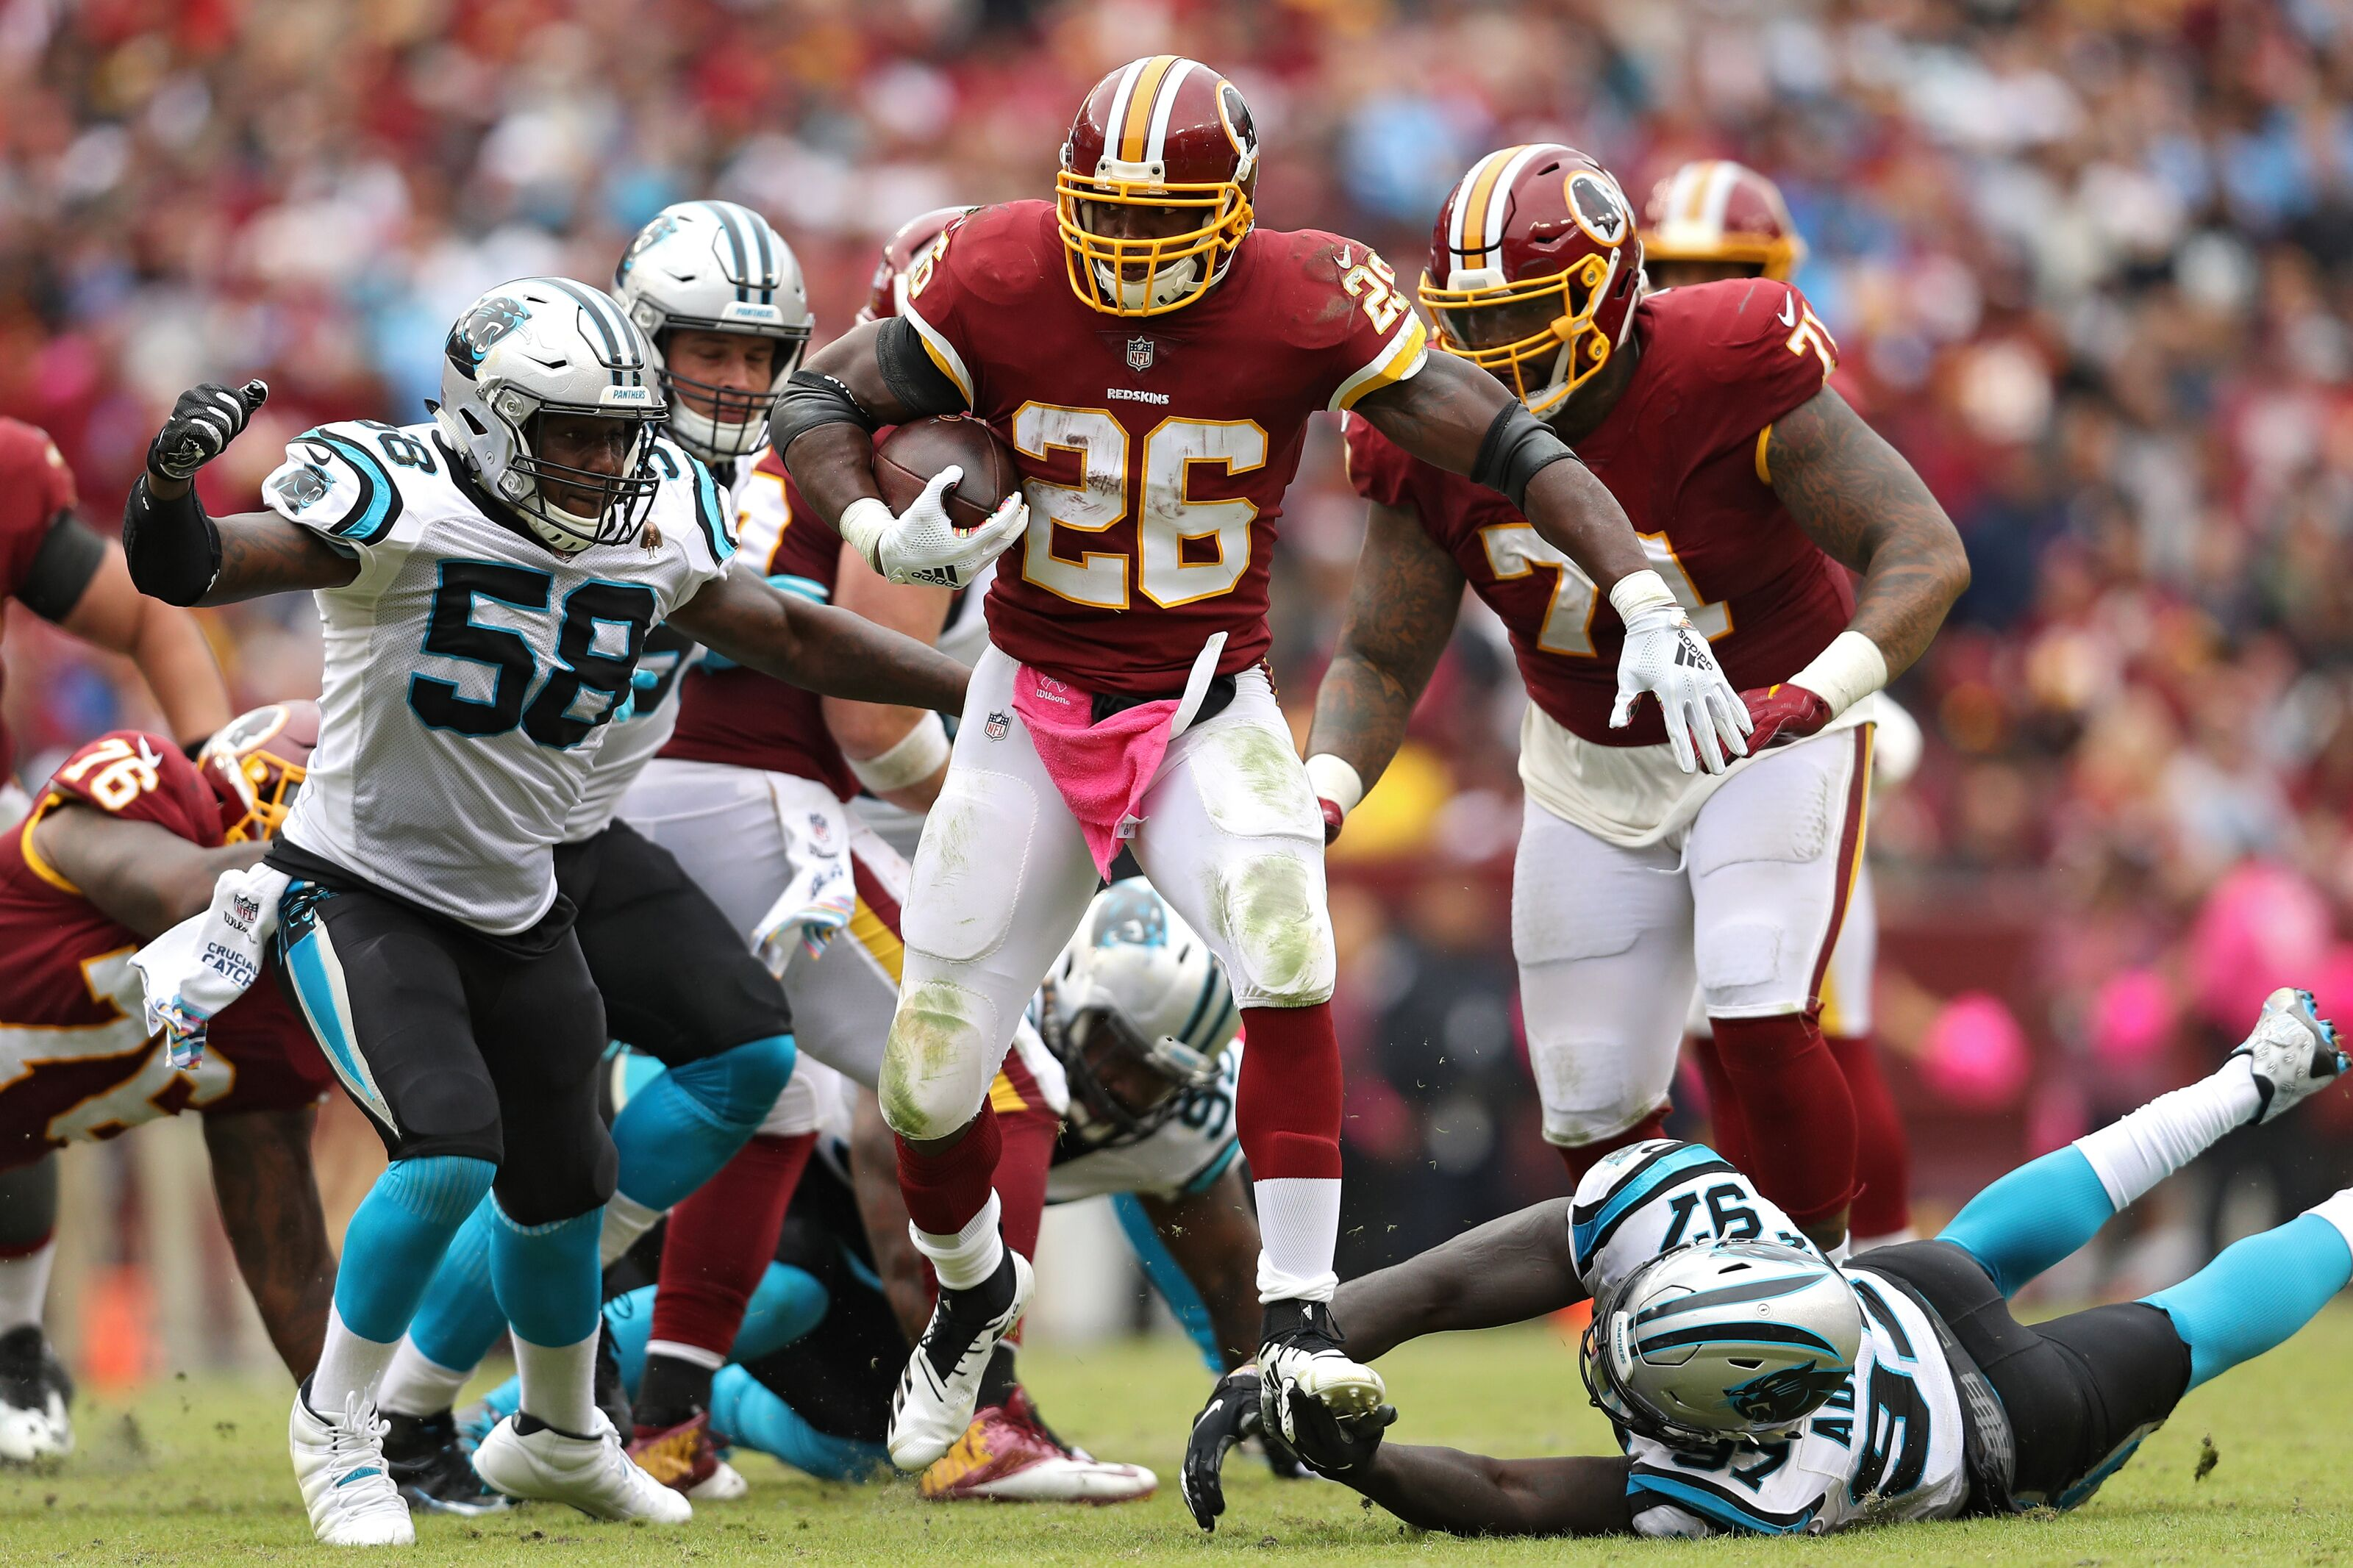 cde5a530 Panthers lose to Redskins behind conservative playcalls, missed chances